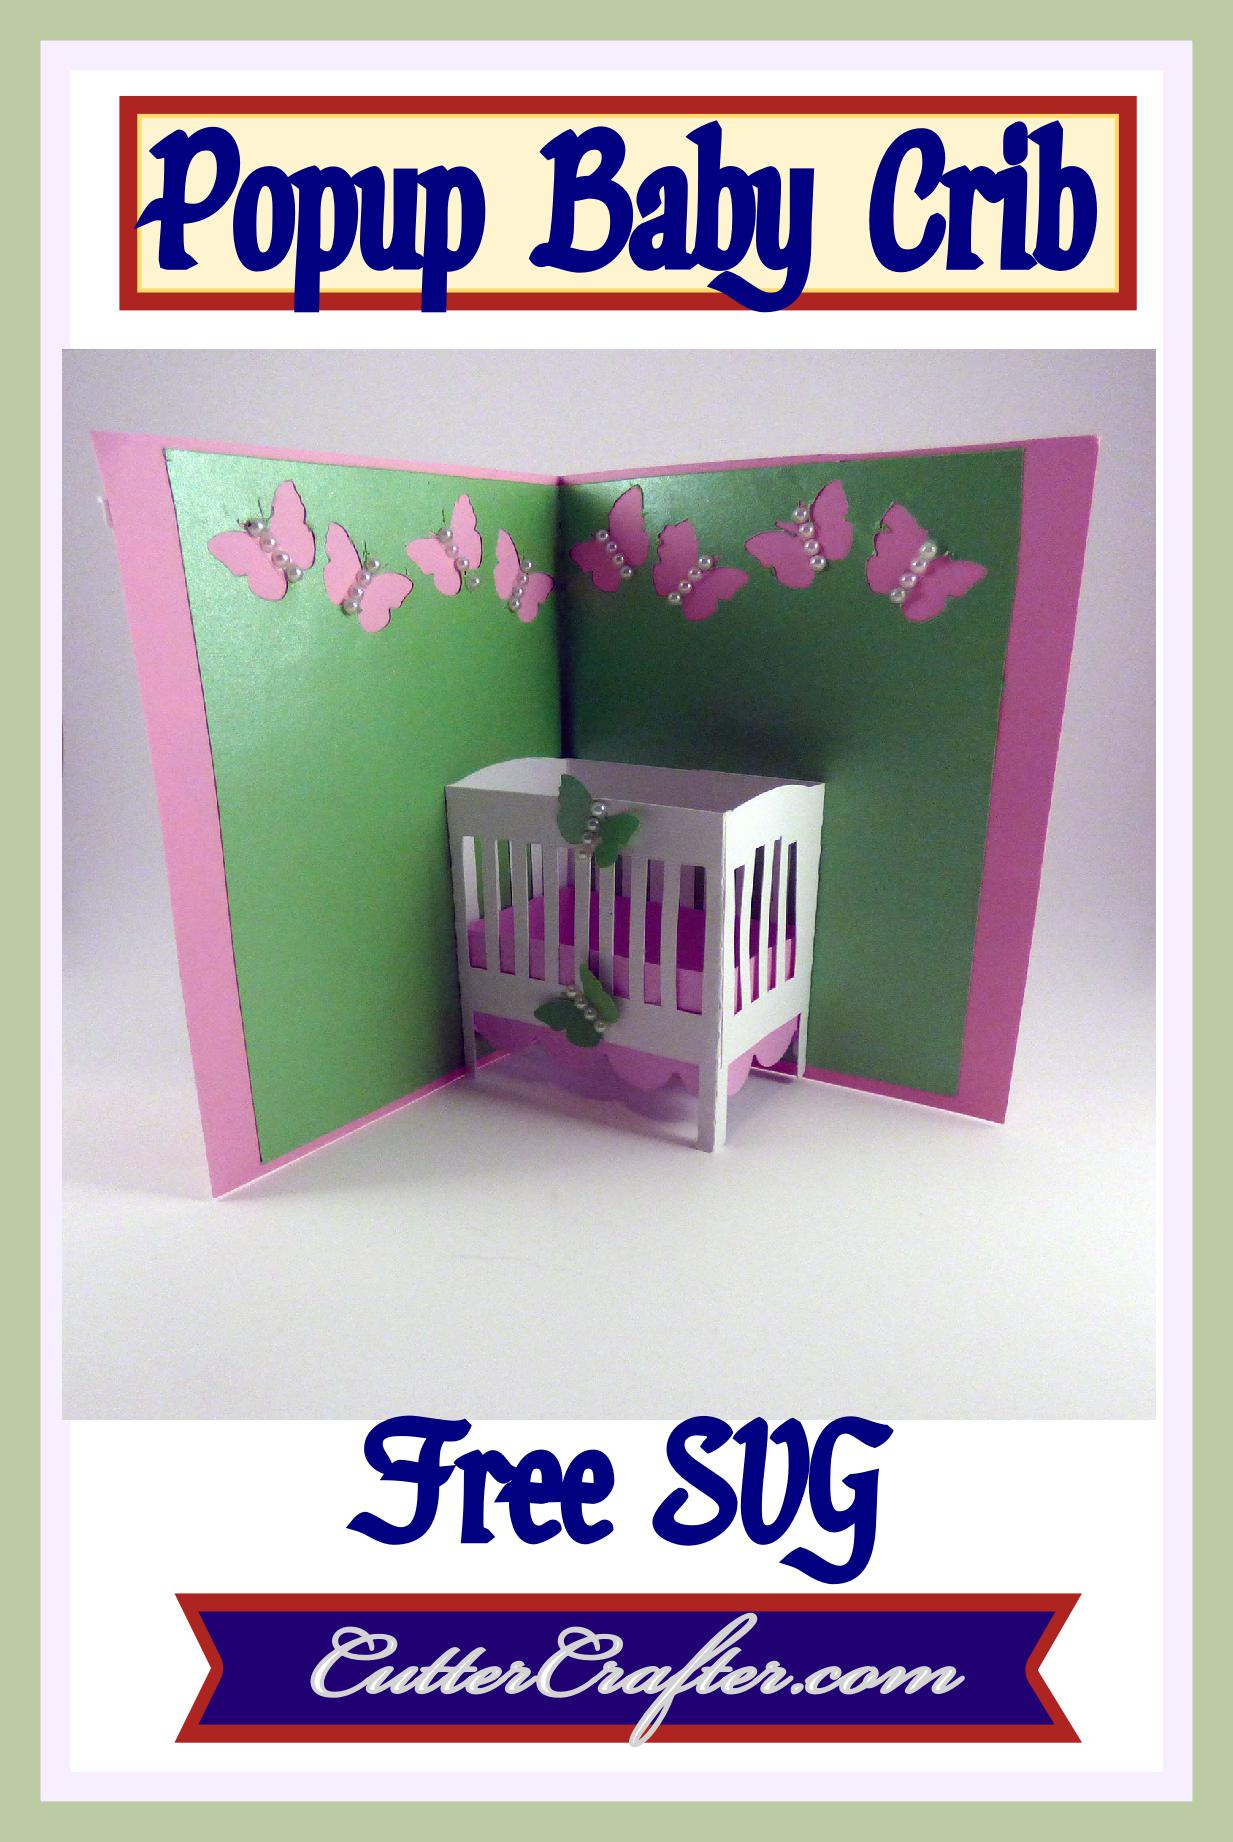 Baby Shower Karte Text.Baby Crib Popup Card Free Svg File Available At